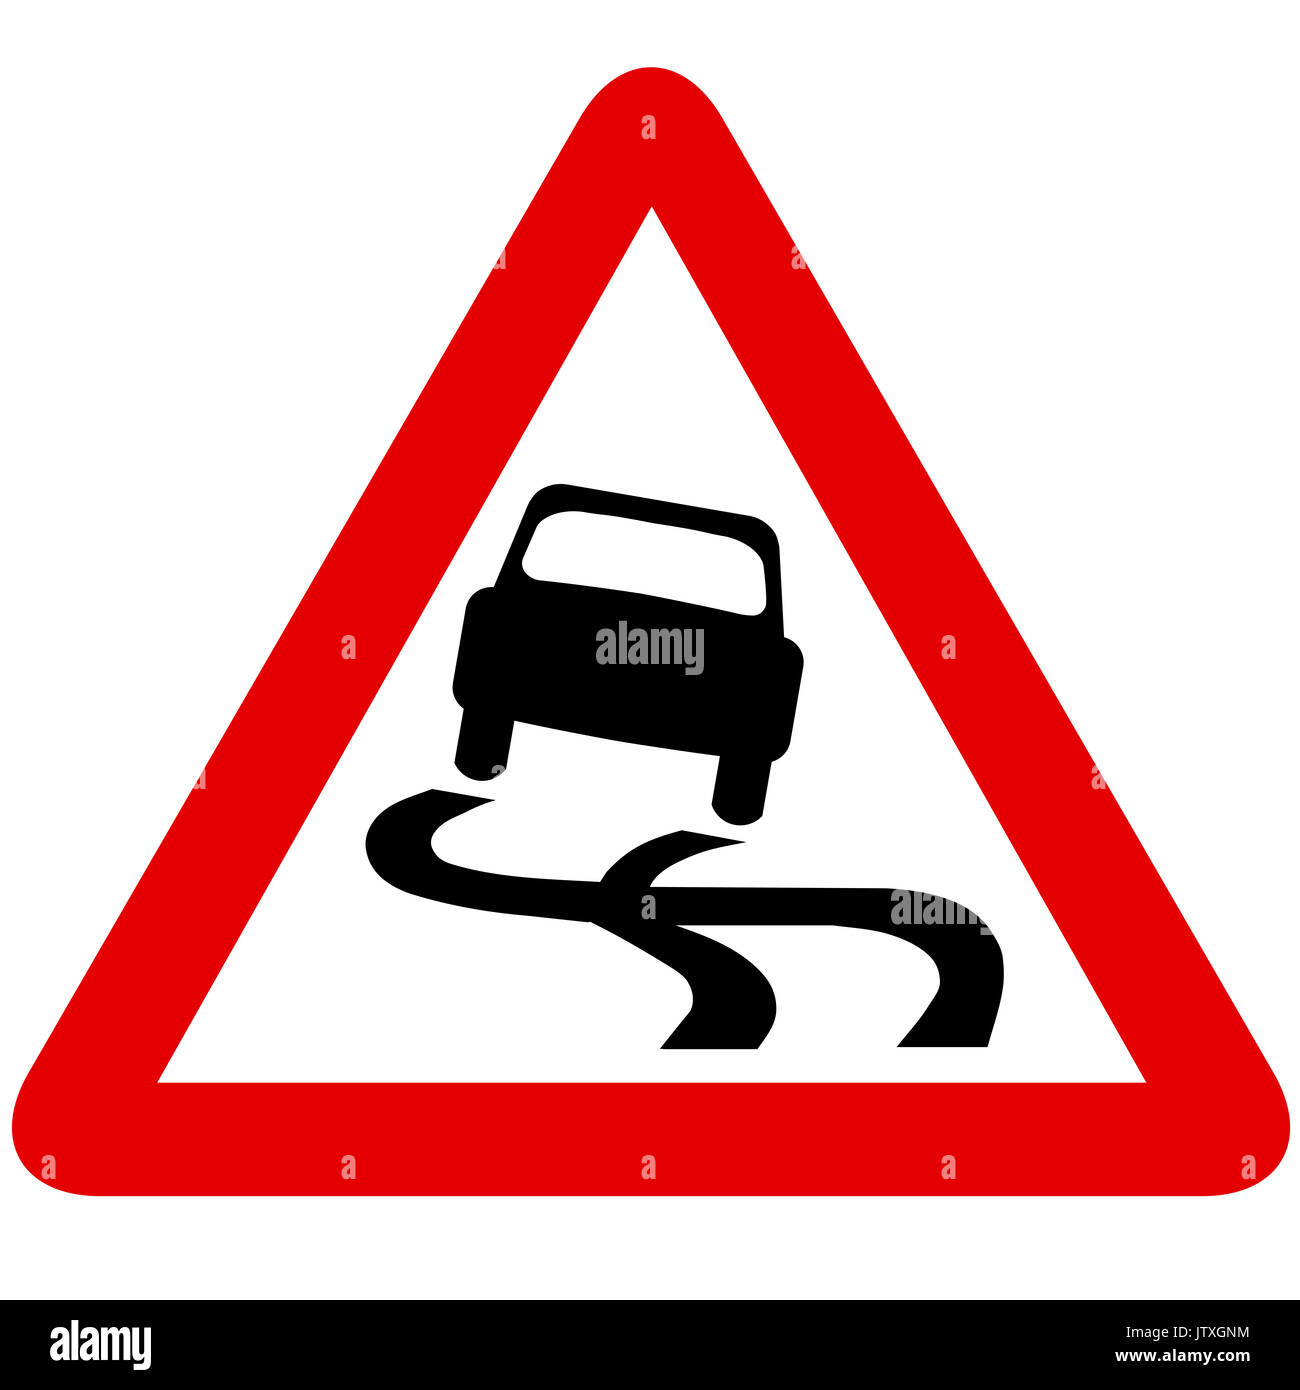 Slippery road road sign on white background - Stock Image